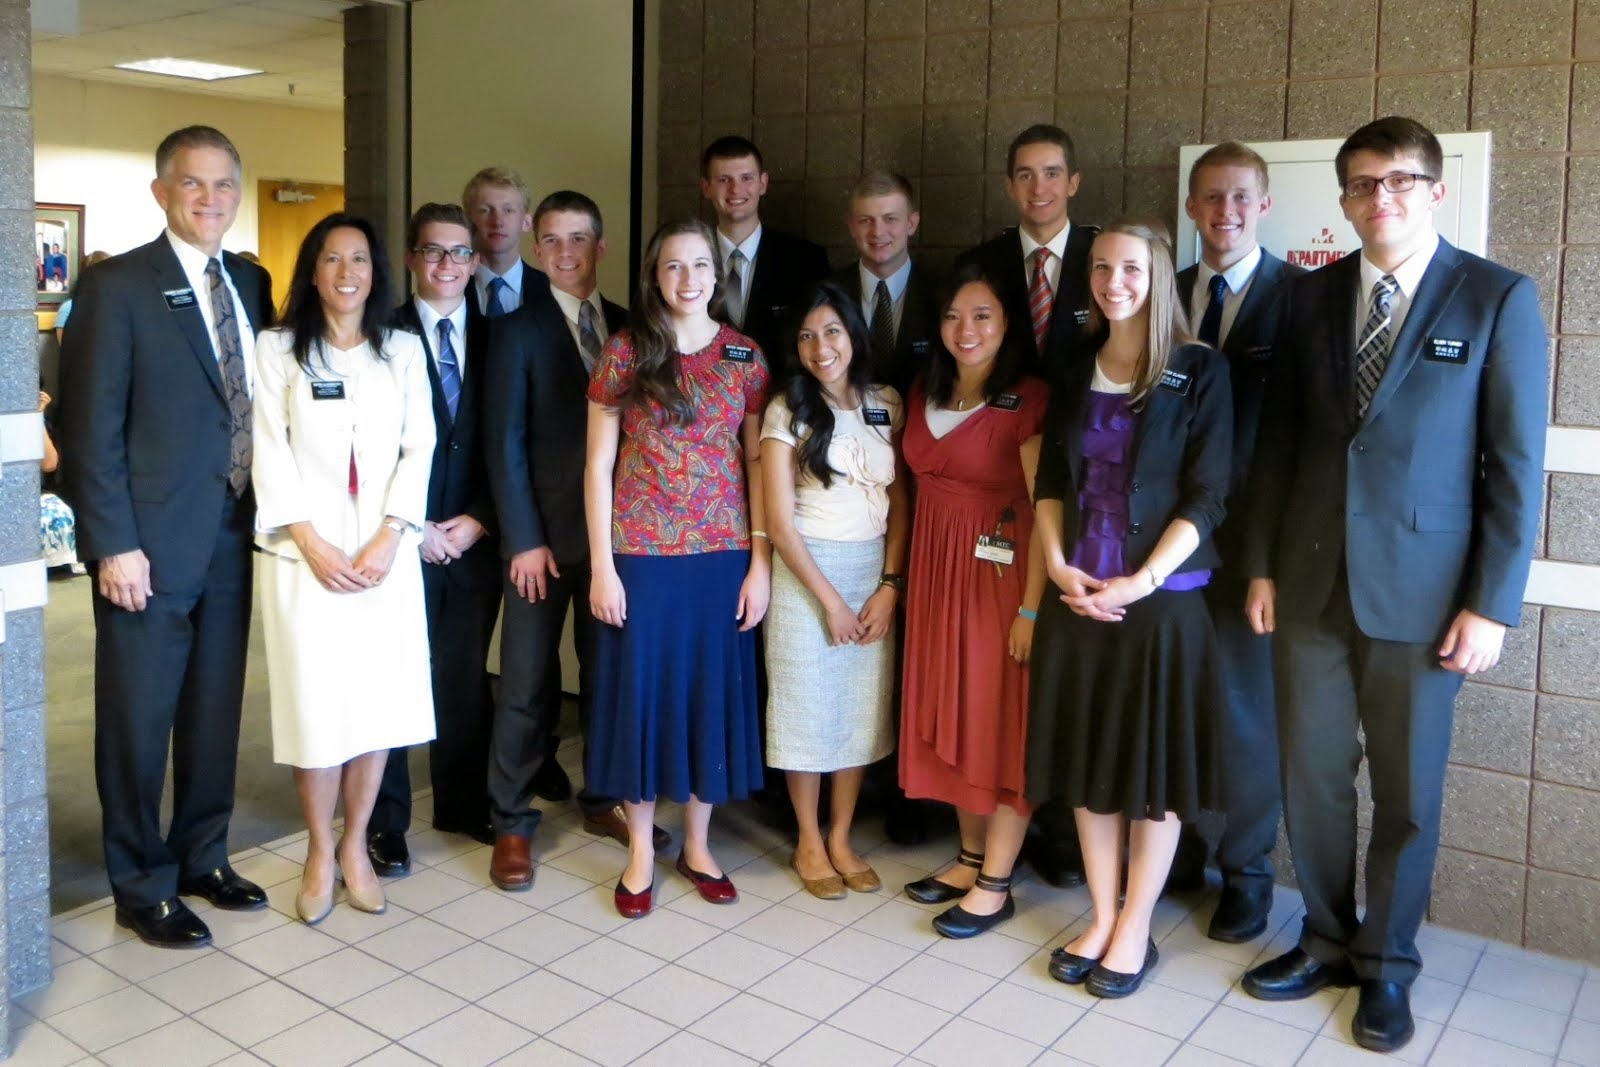 District 25L at the MTC